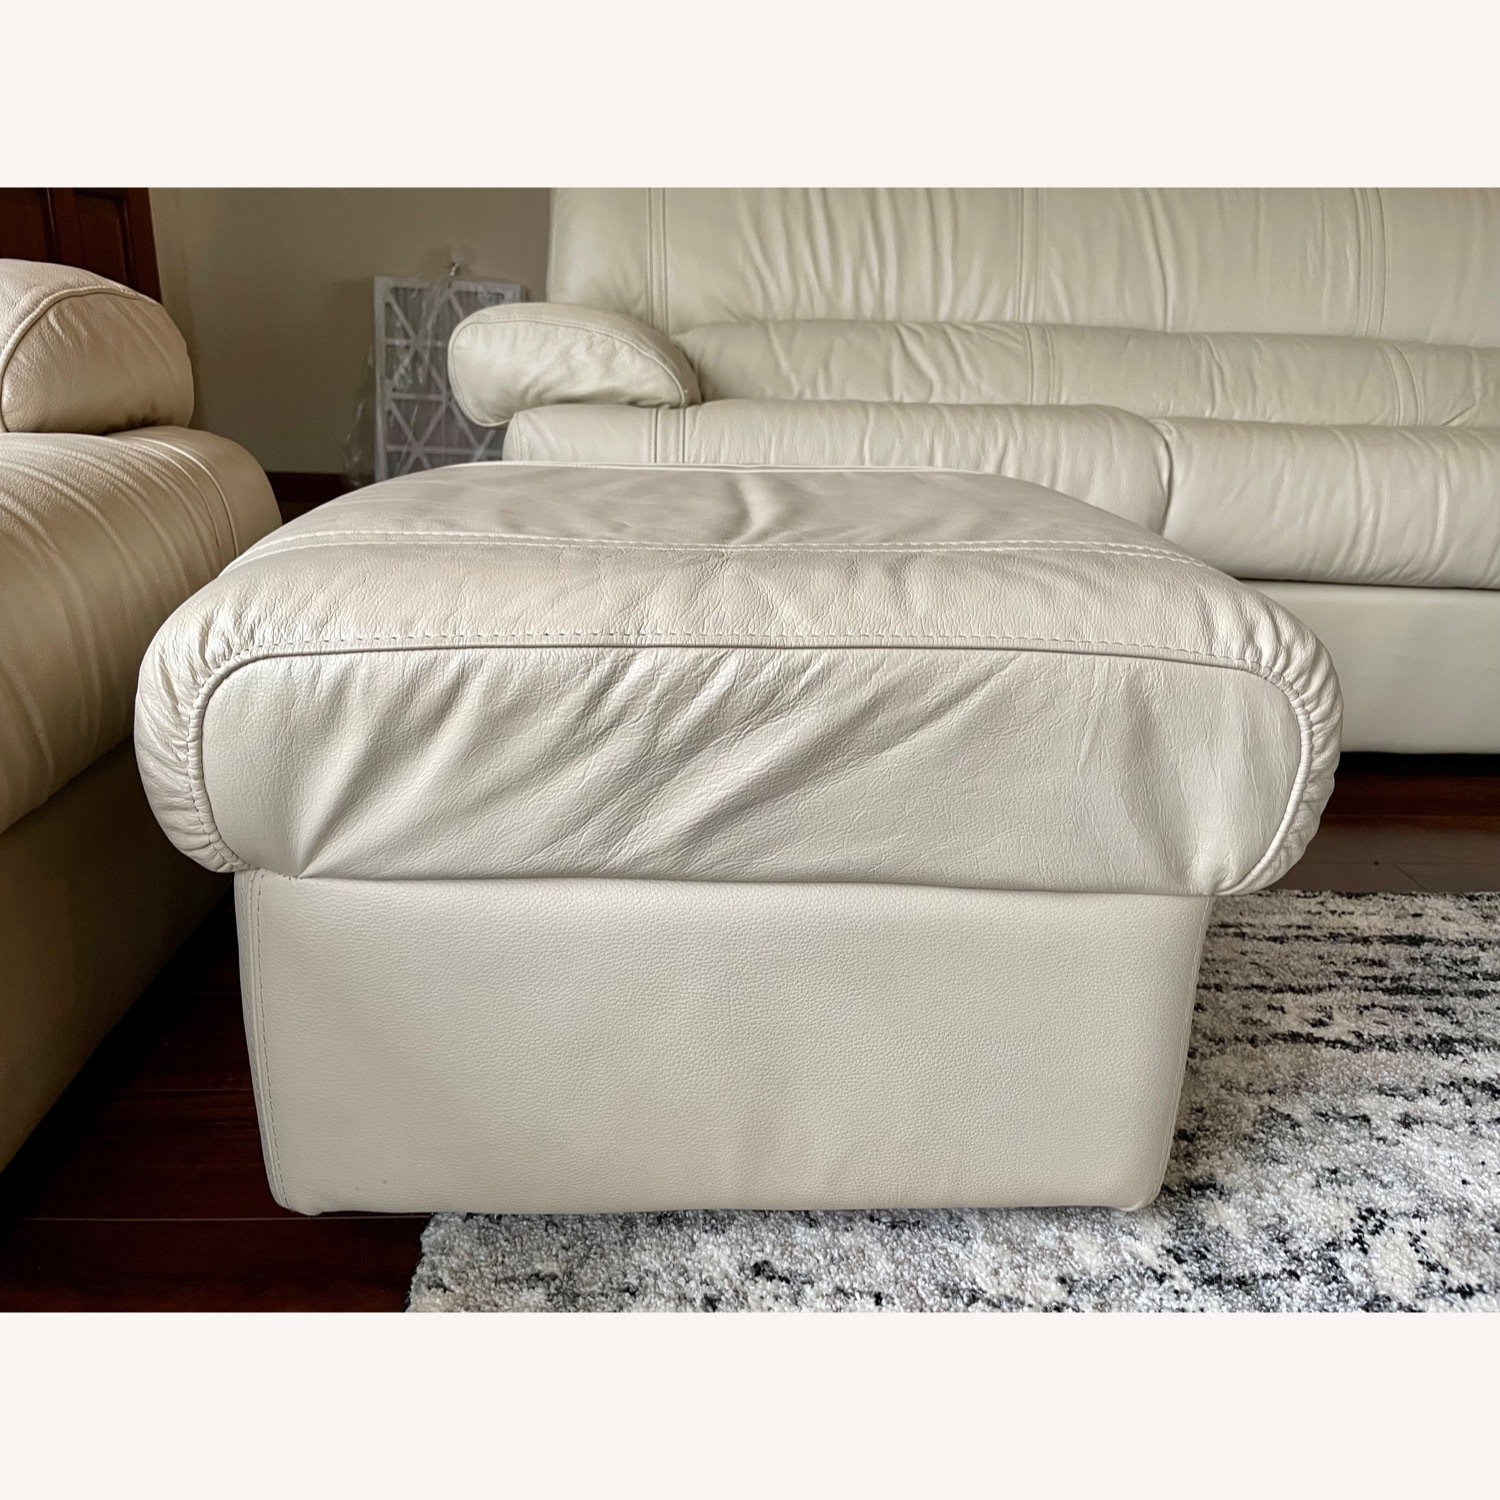 Leather Sofa Set Made in Italy - image-4